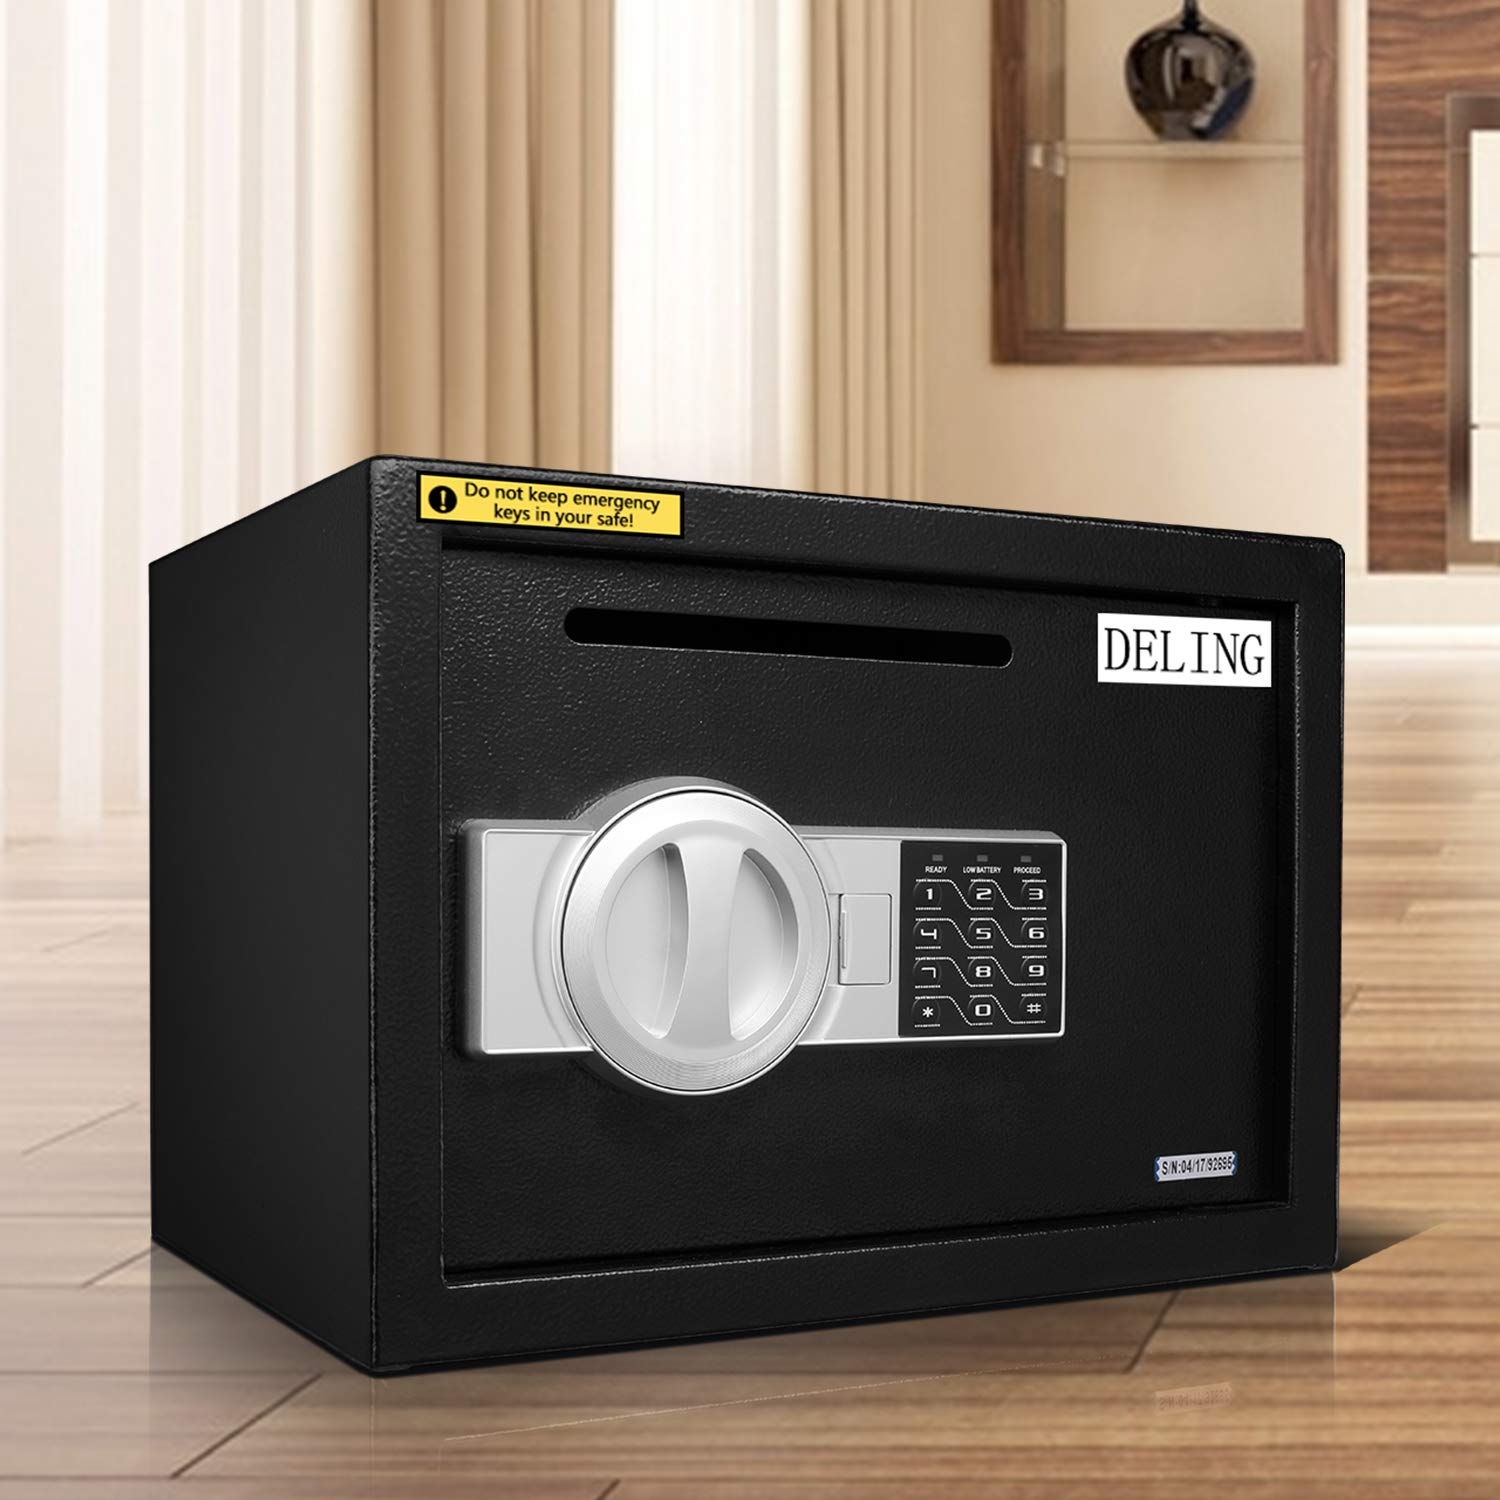 HYD-Parts Digital Security Safety Box,Money Gunsafe Cabinet Box for Home Office Hotel (25) by HYD-Parts (Image #9)